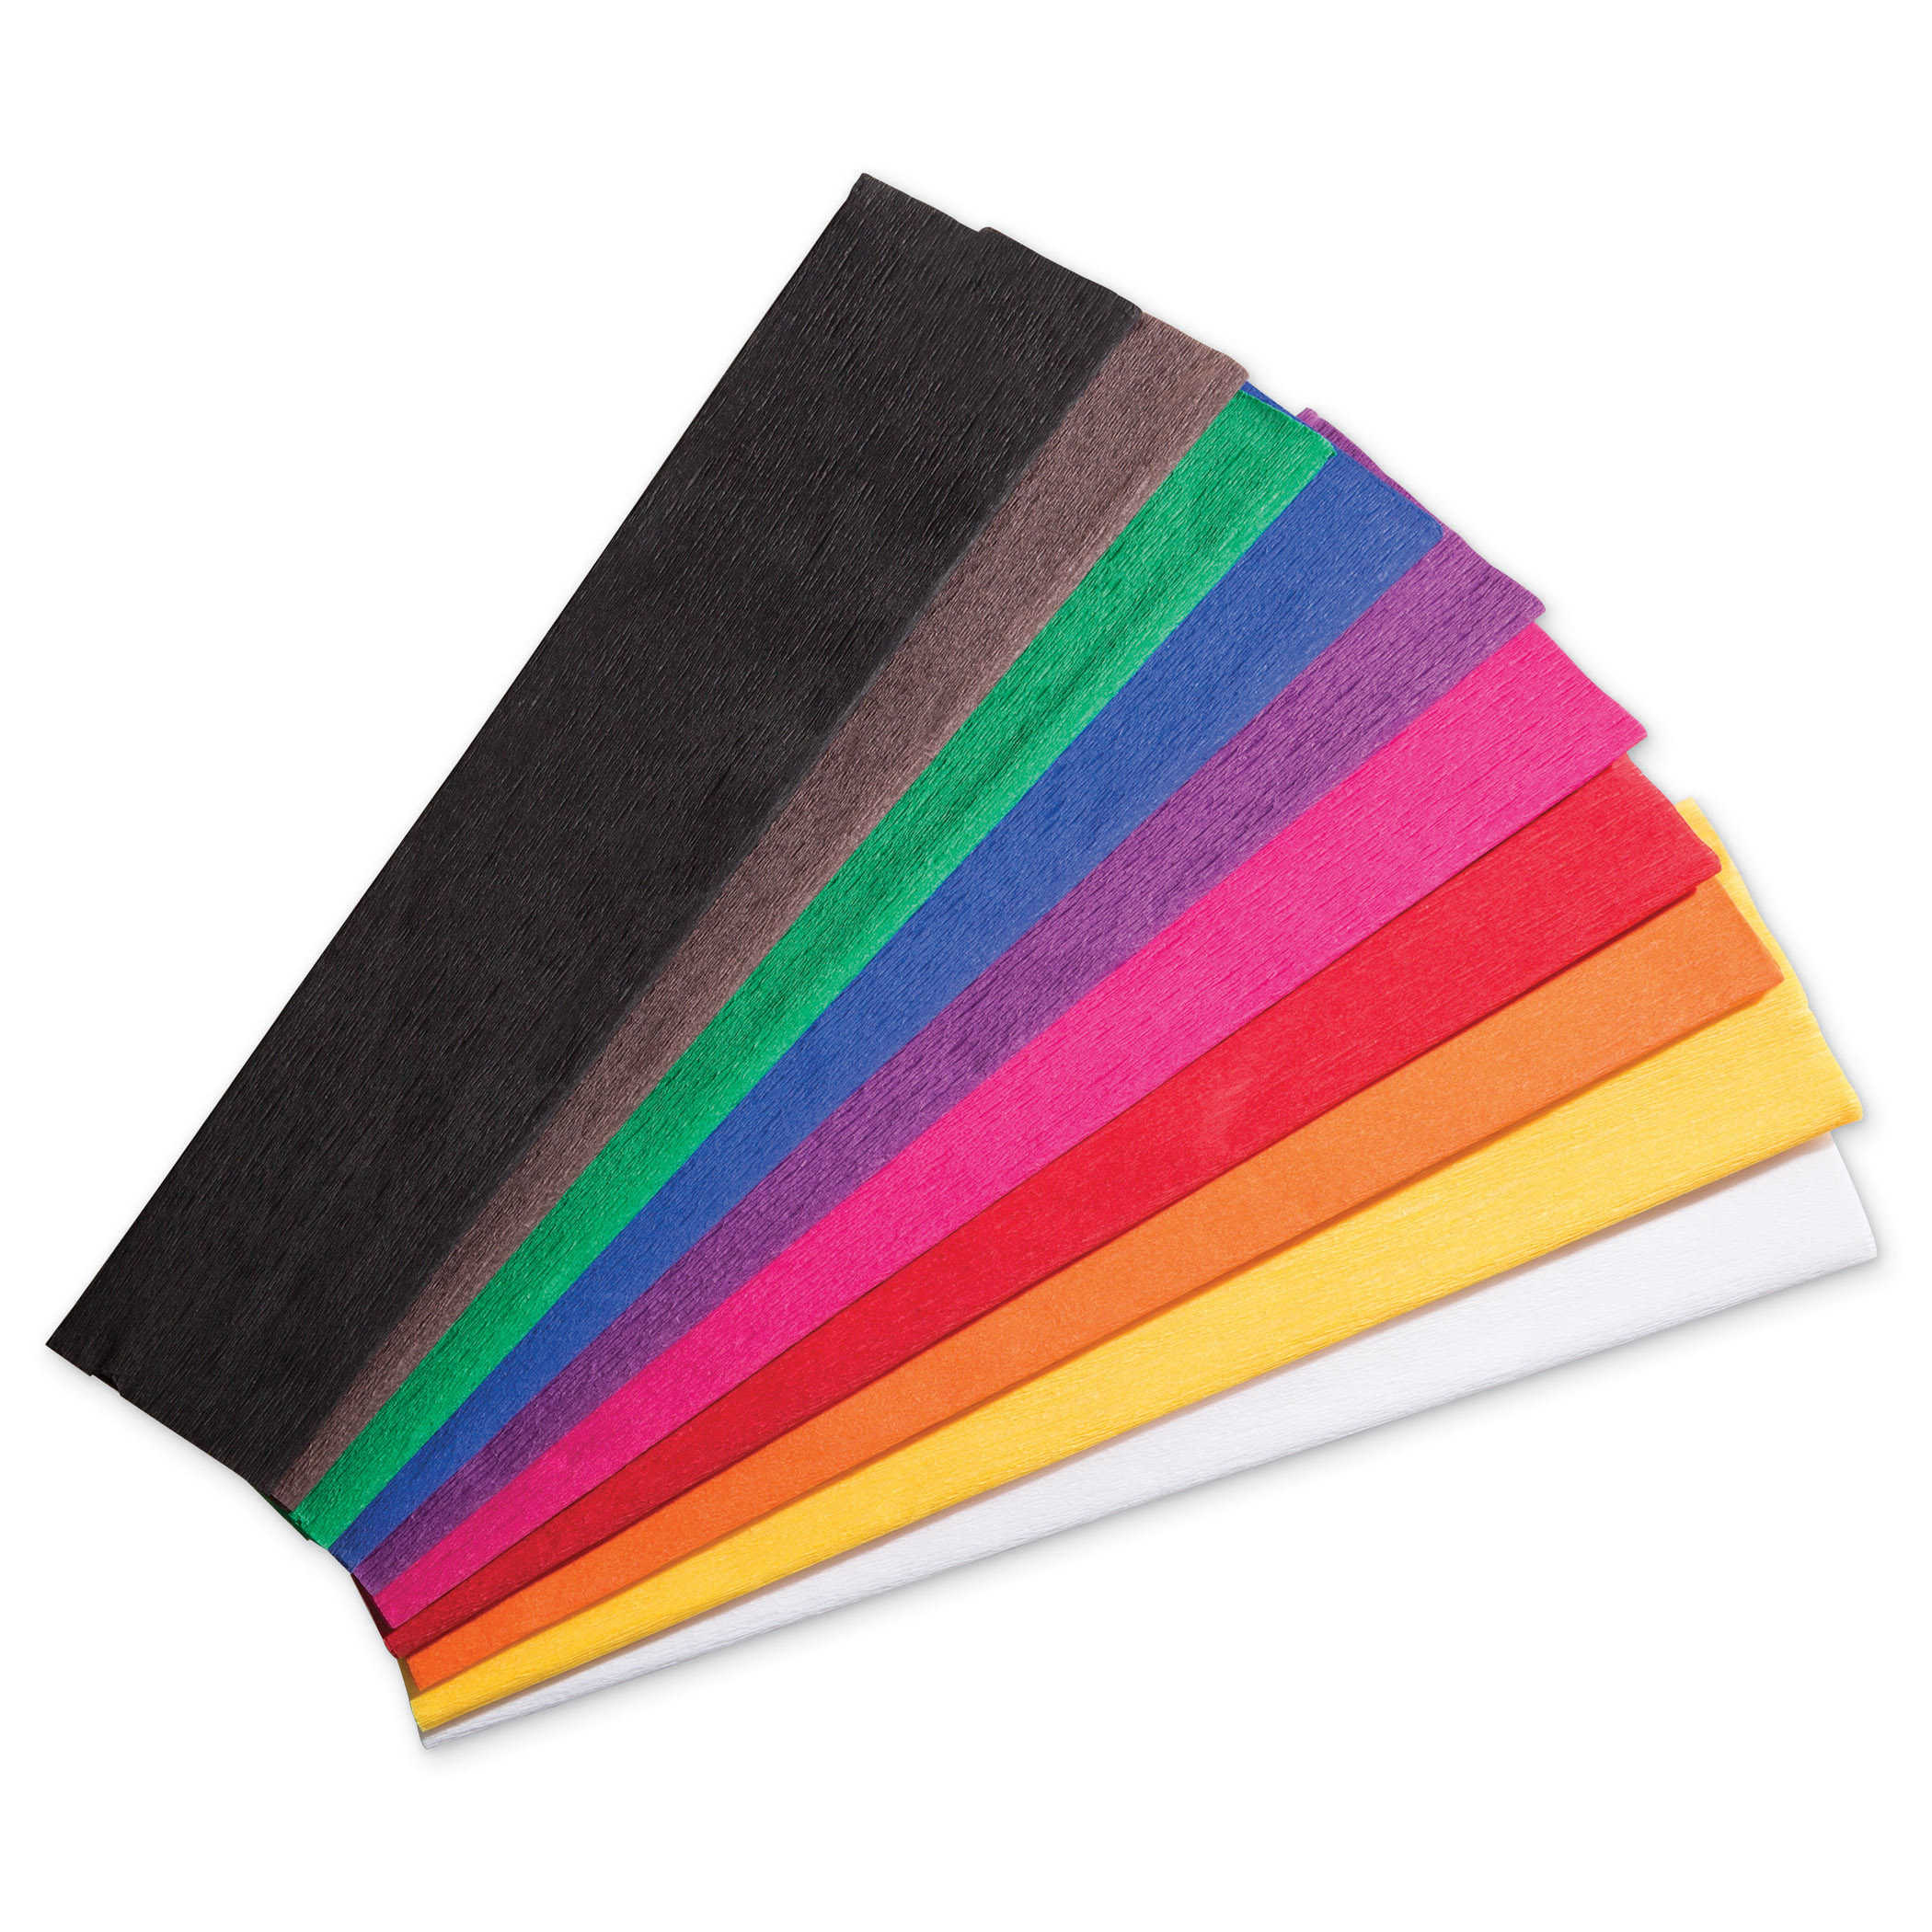 Creativity Street® Crepe Paper Fold Assortment, 10 Sheets